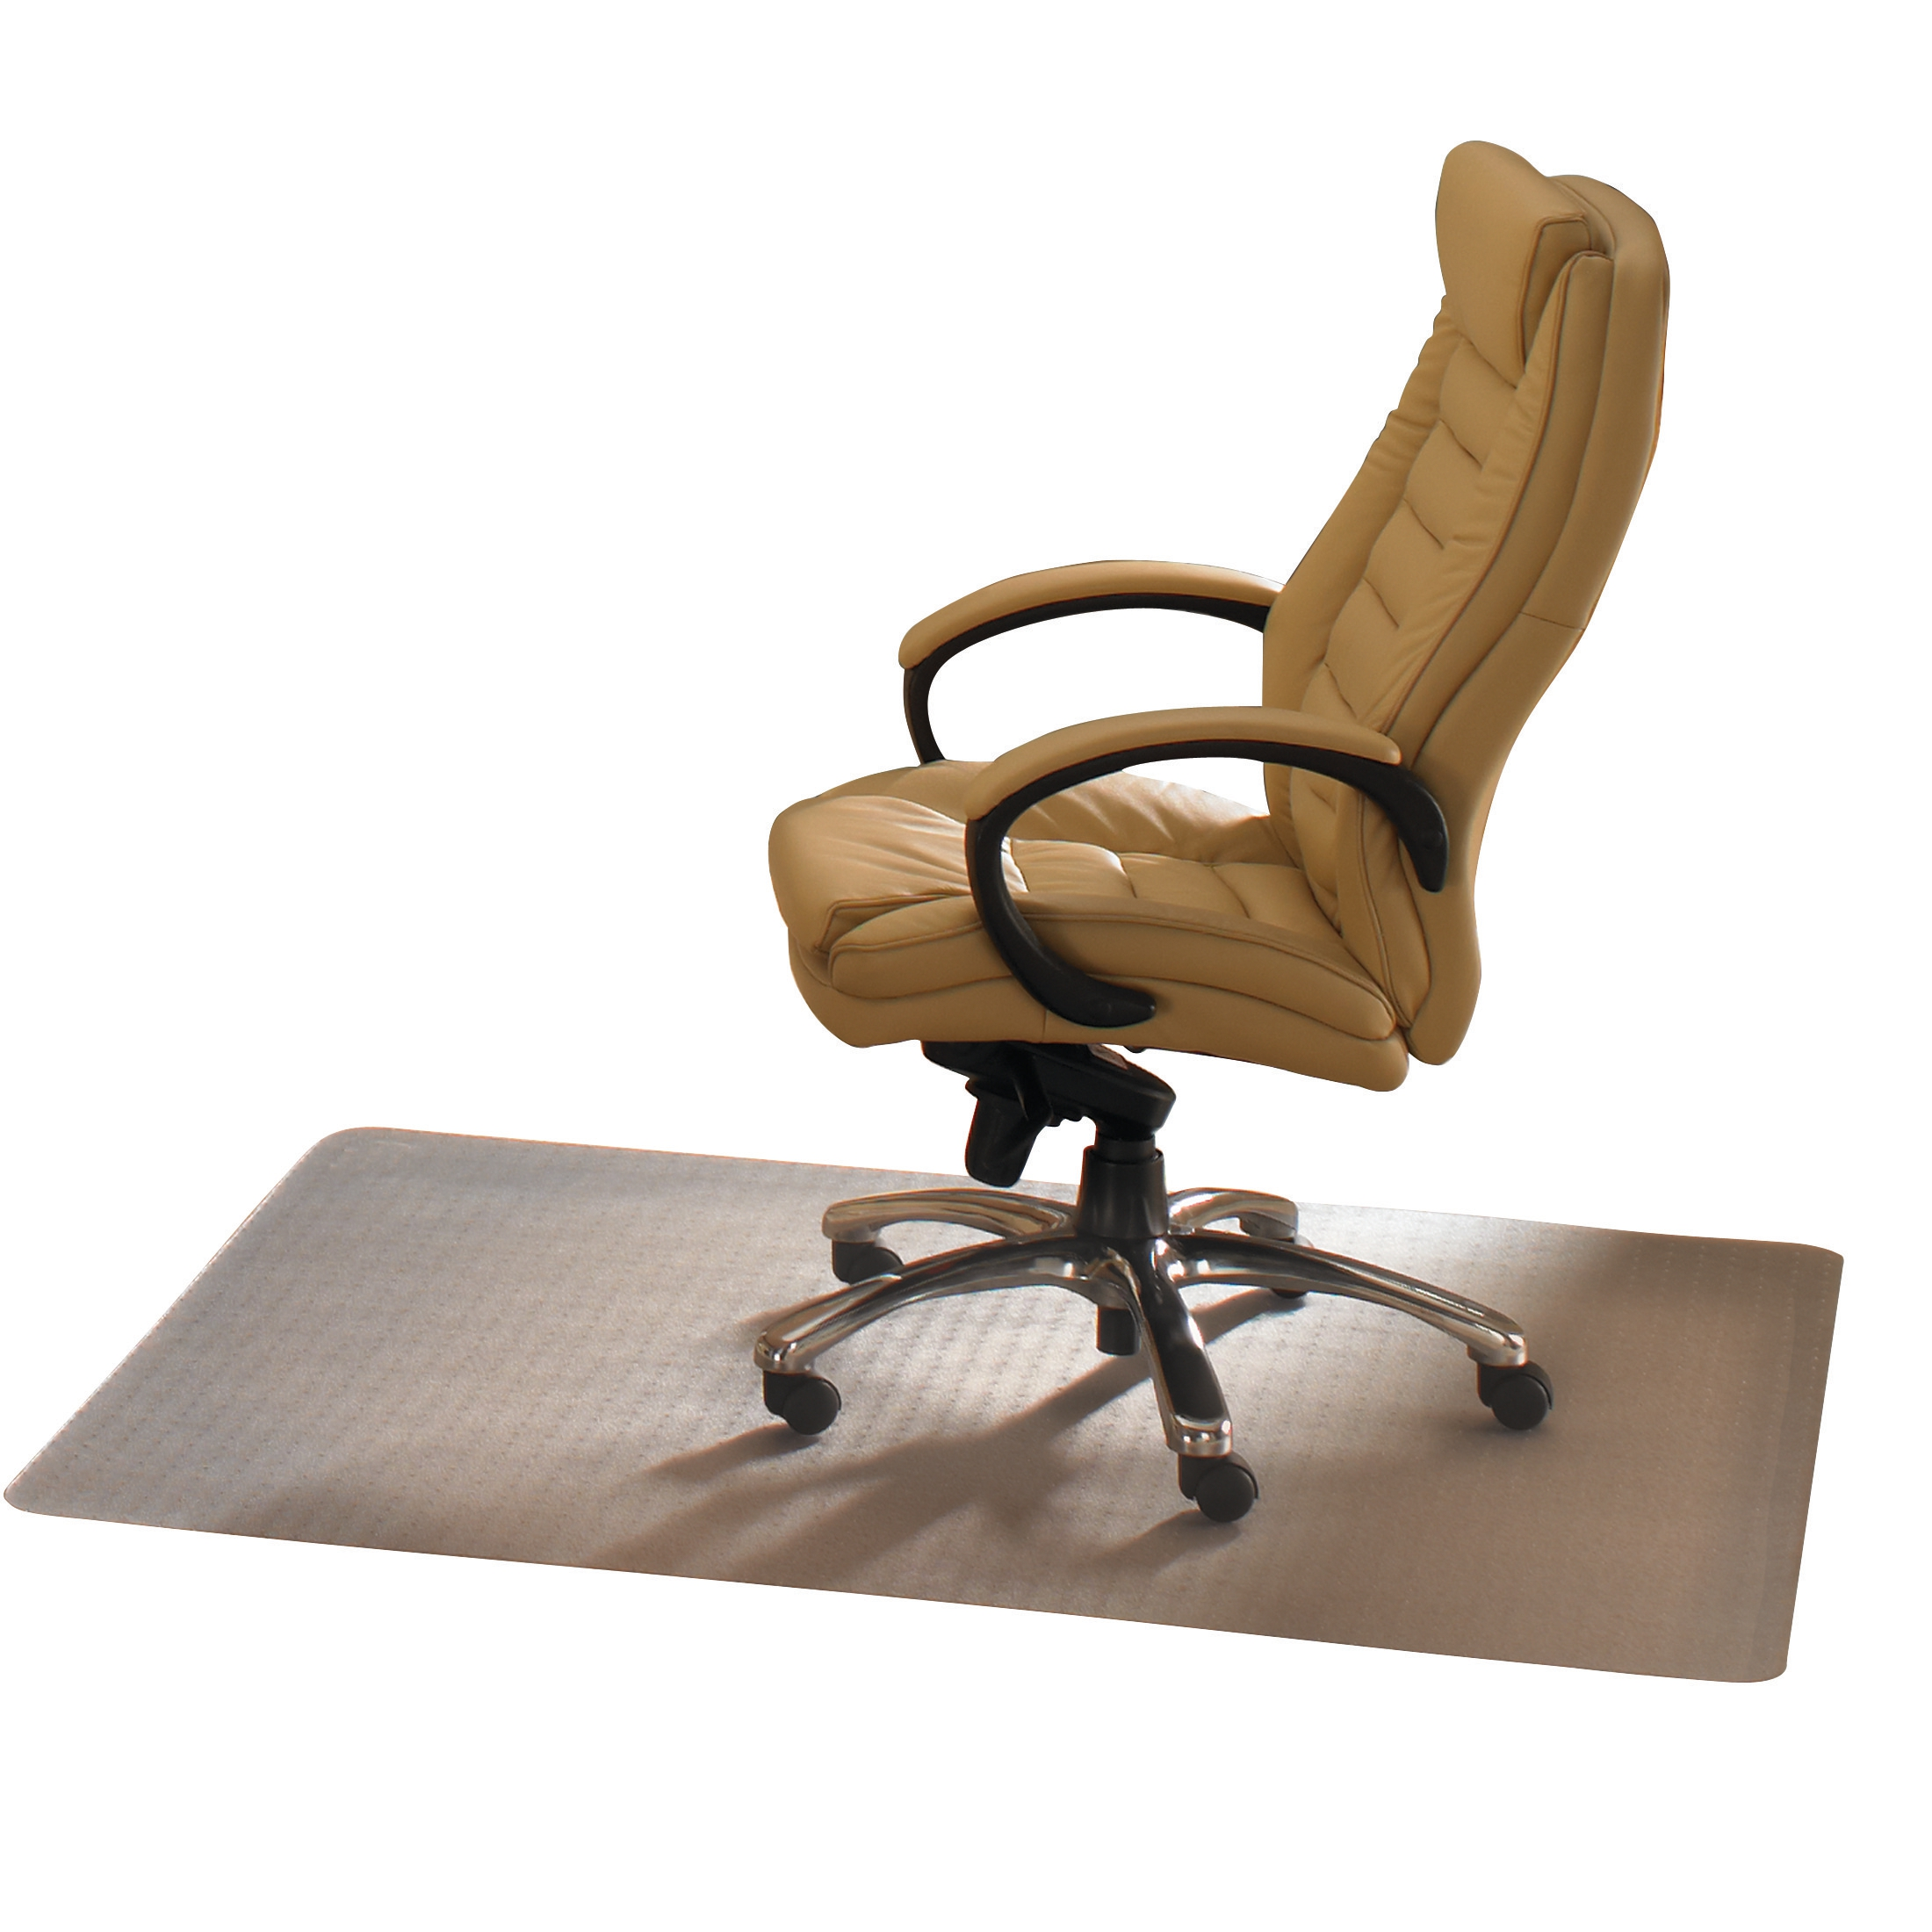 Image for Cleartex Advantagemat Chair Mat For Hard Floor Protection 1200x1500mm Clear Ref FCPF1215225EV